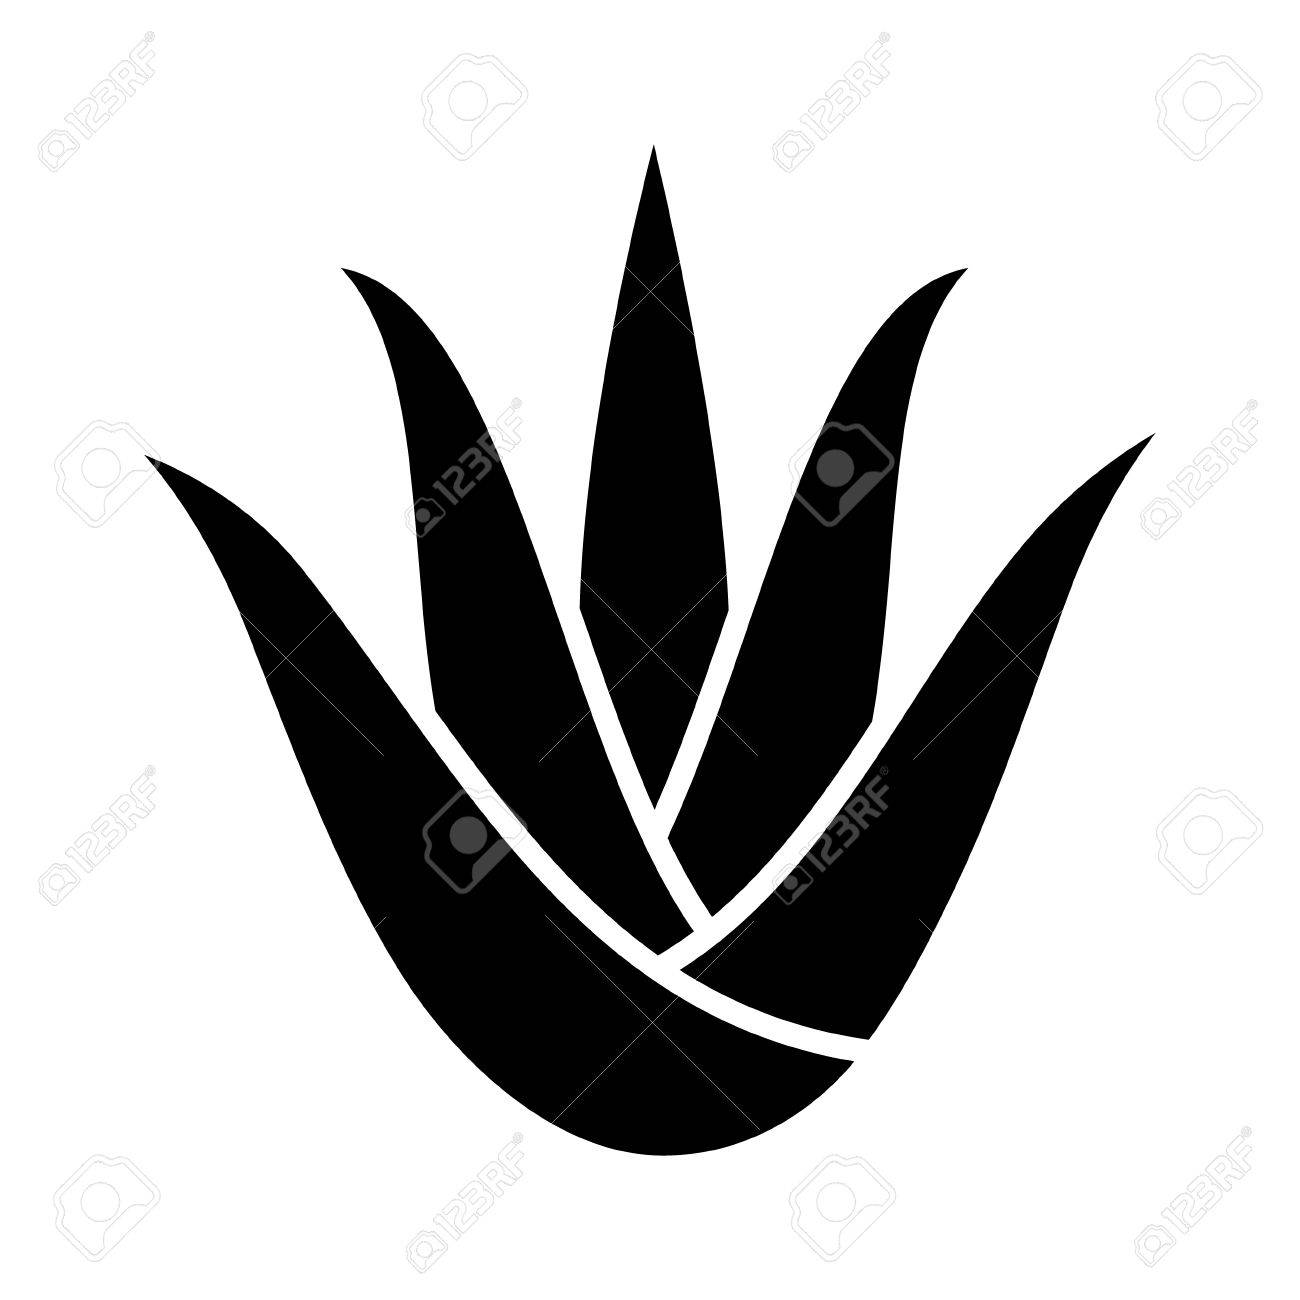 Aloe vera plant with leaves flat icon for apps and websites - 66078508